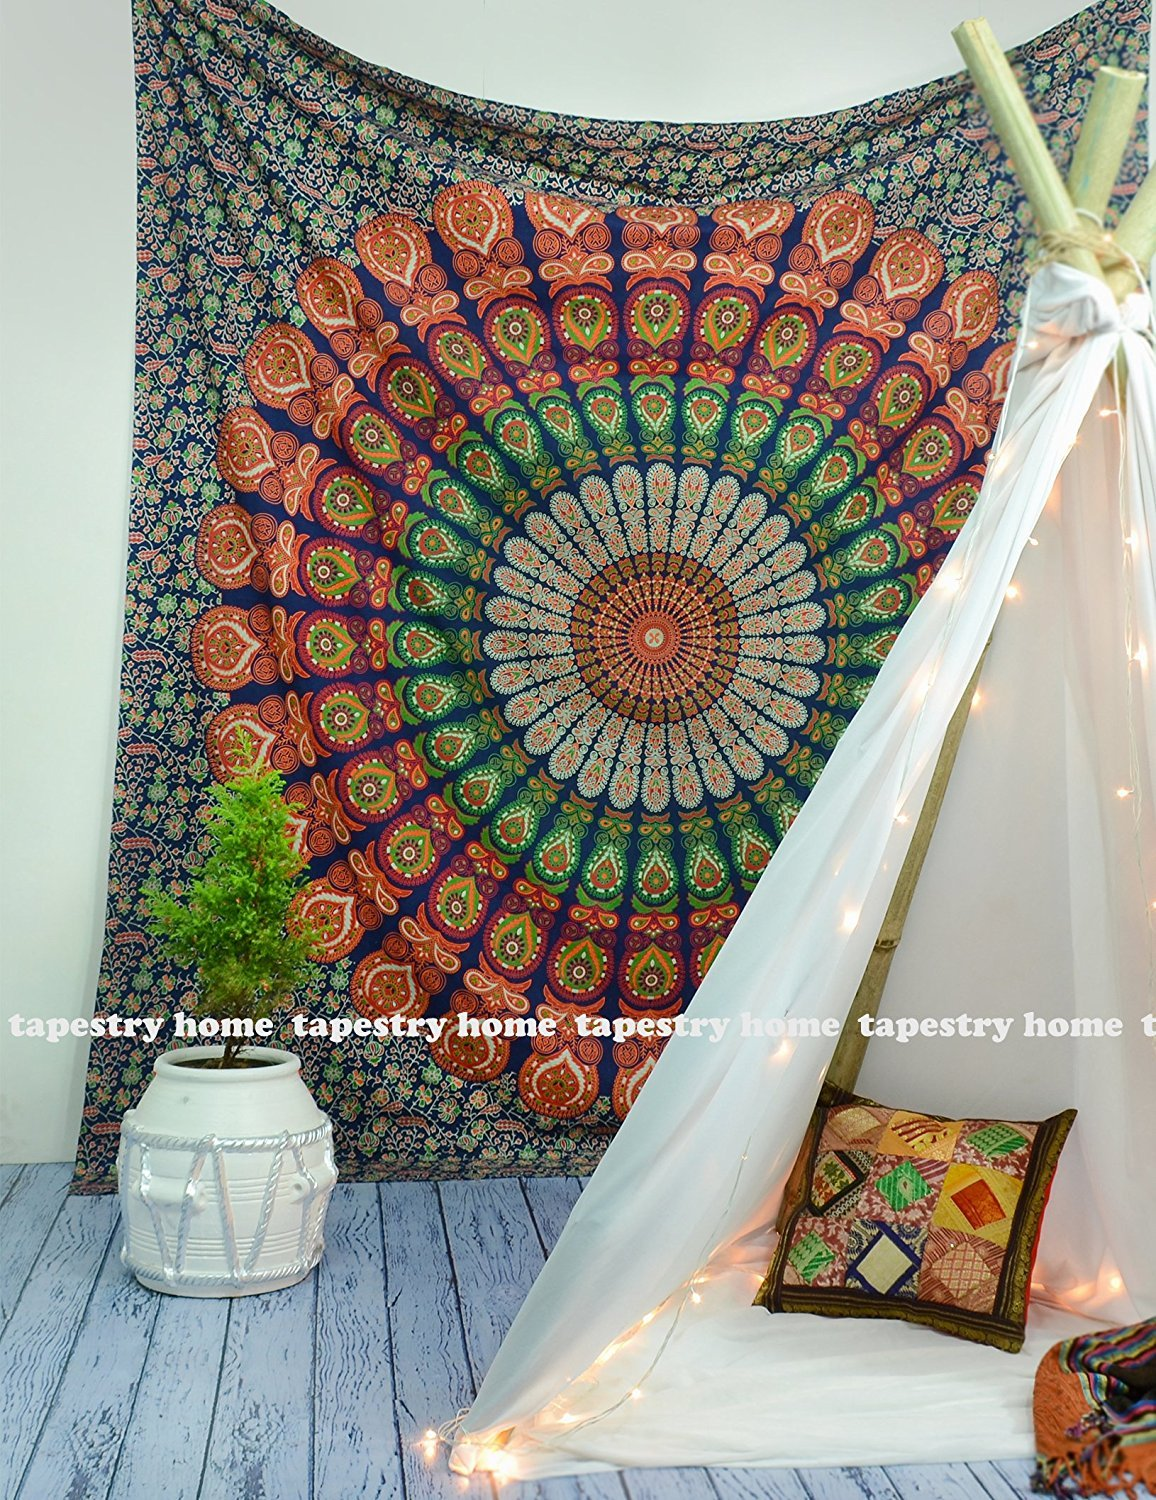 tapestry home th-002 large Hippie Mandala Bohemian Tapestry Wall Hanging, Psychedelic Wall Art, Dorm Décor Beach Throw, Indian Wall Tapestries 84x90 Inches